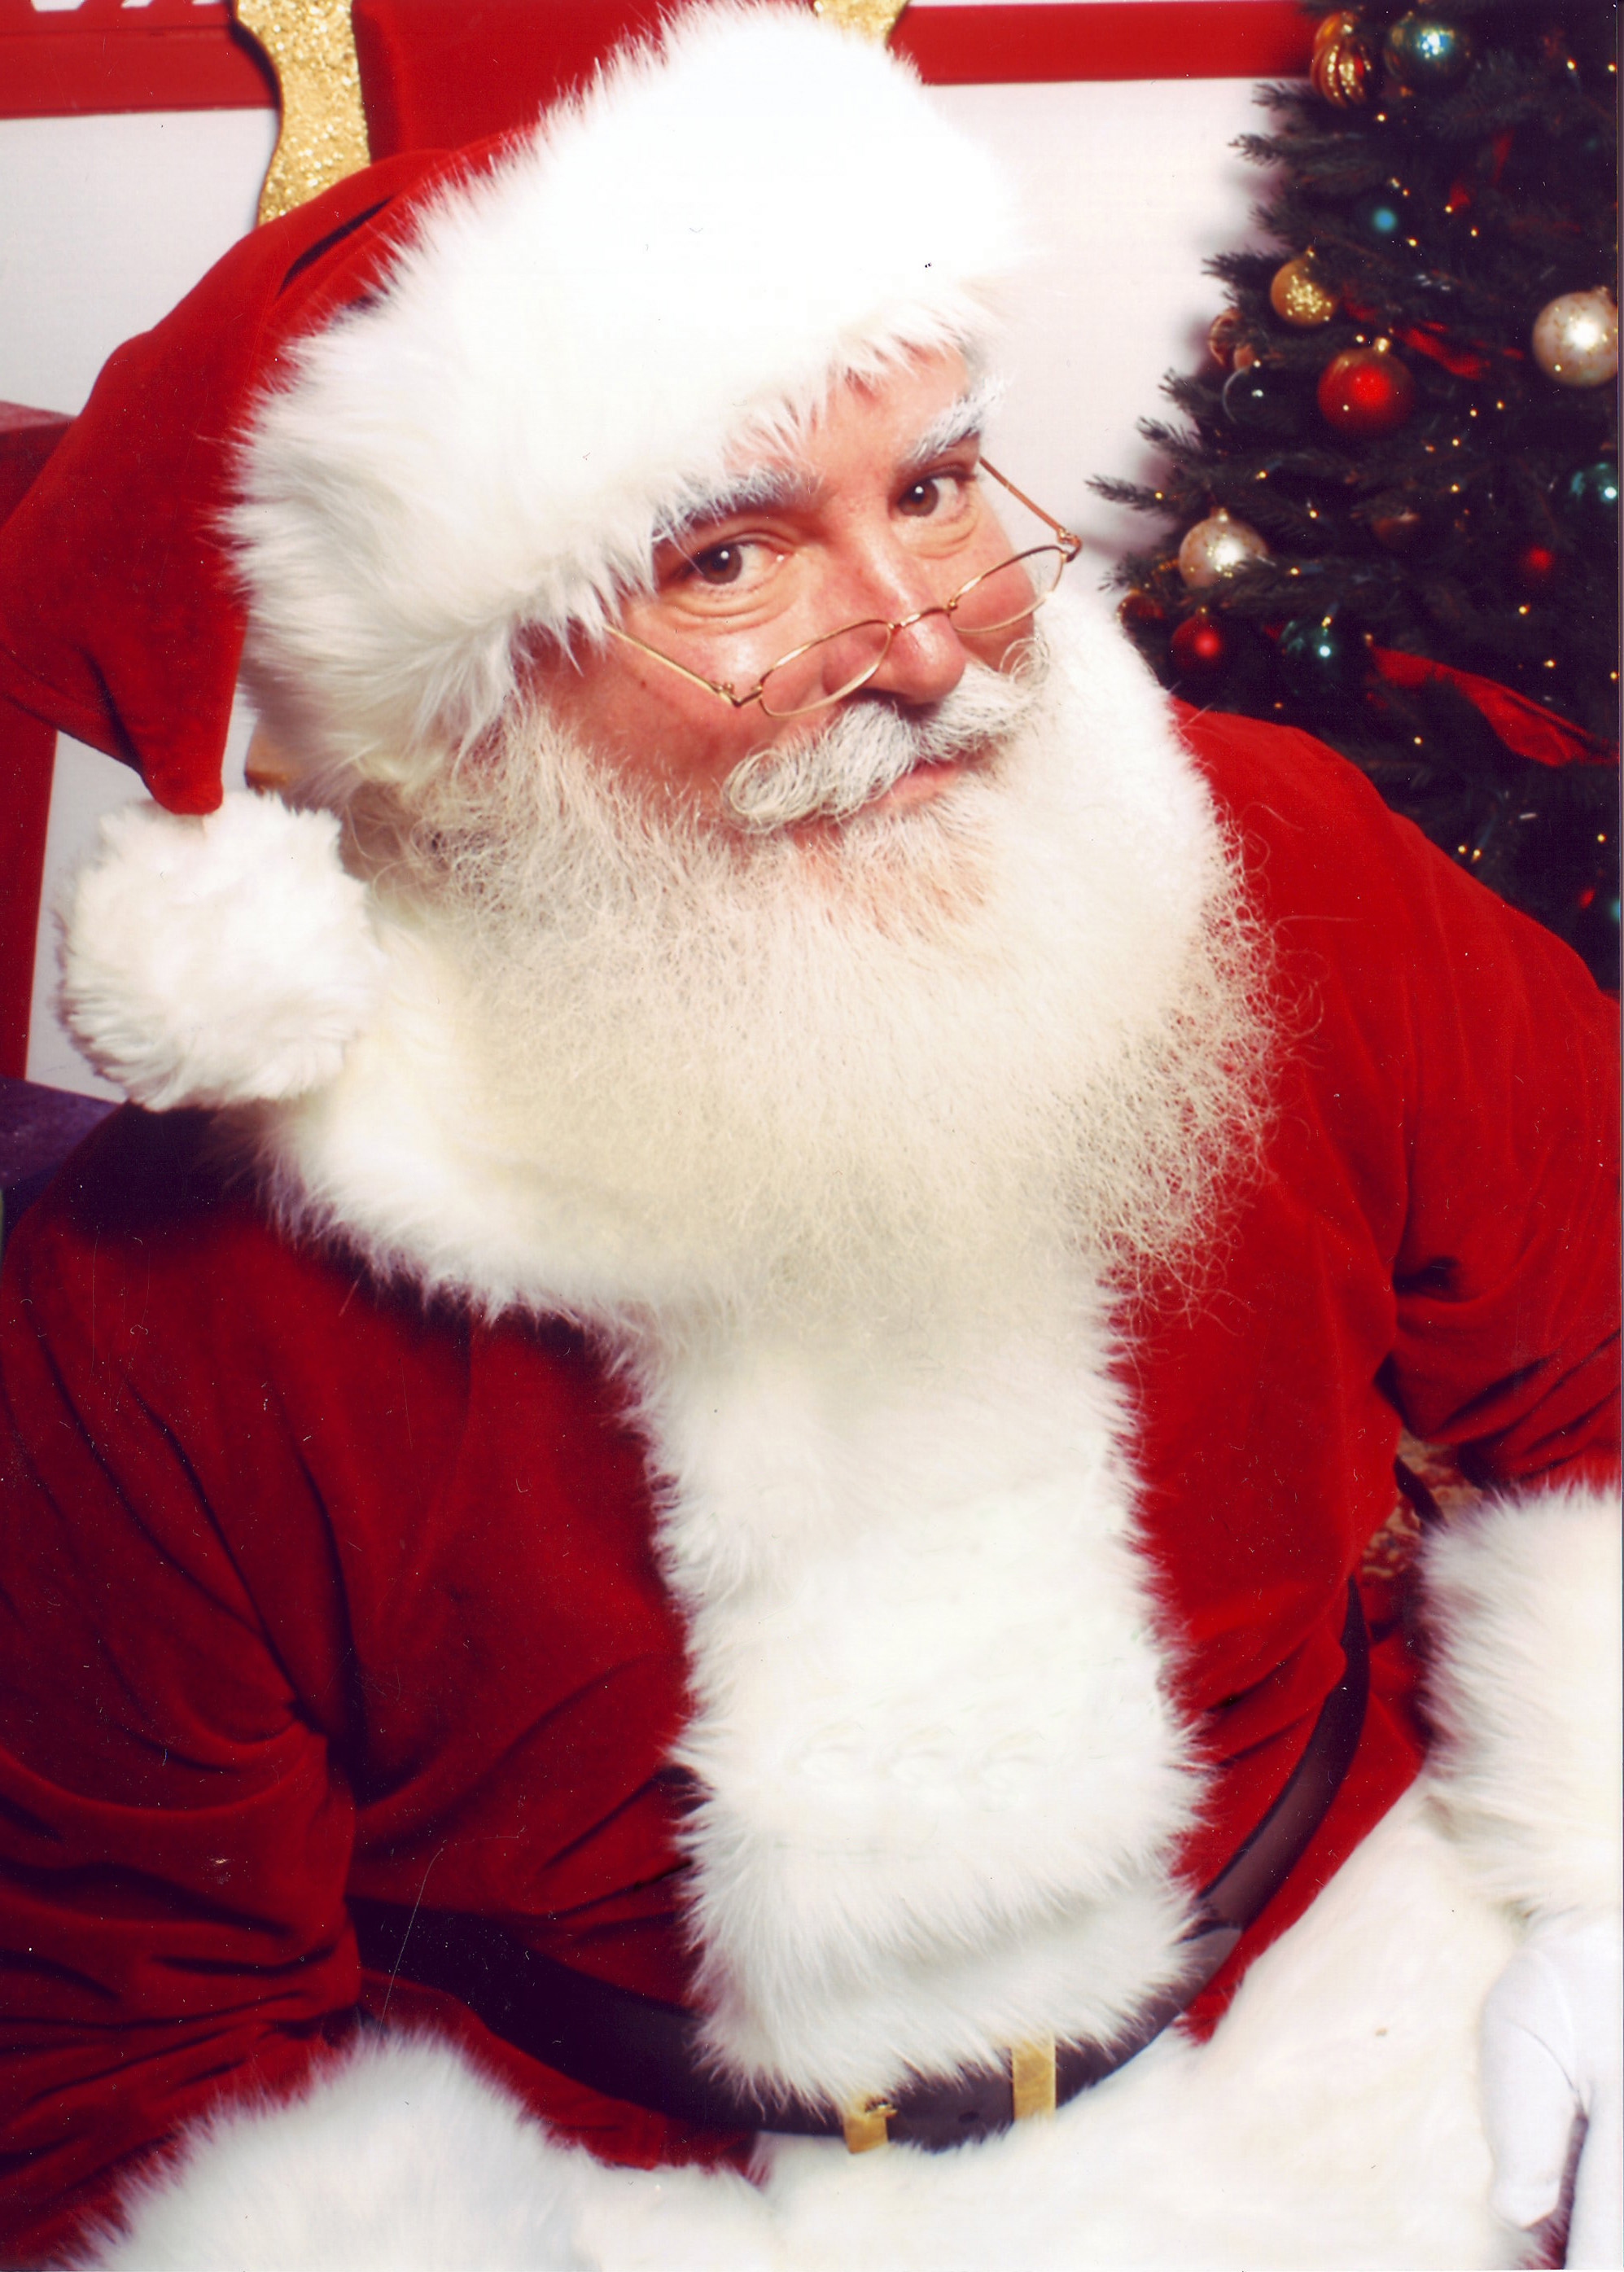 Santa Claus: Let your kids believe, what's the harm?